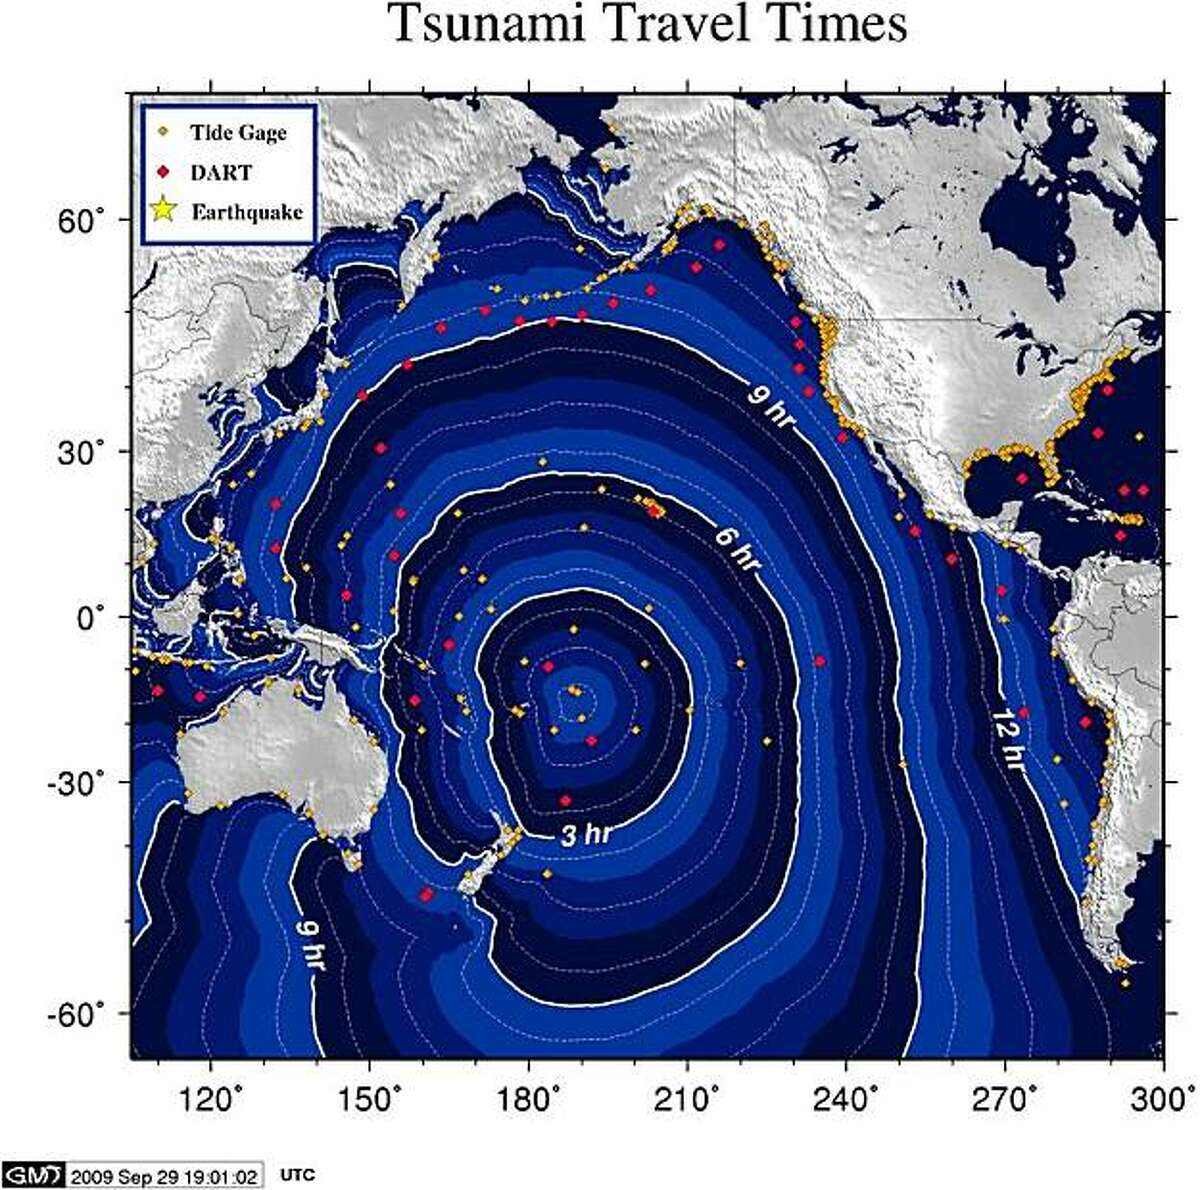 This graphic provided by the National Oceanic and Atmospheric Administration (NOAA) shows tsunami travel times following an earthquake with a magnitude of 8.0 rocked the island nation of Samoa, causing a tsunami. At least five people are reported to have been killed after a massive earthquake and tsunami hit Samoa, the New Zealand deputy high commissioner to the Samoan capital Apia, David Dolphin said. AFP PHOTO/NOAA/HO ++RESTRICTED TO EDITORIAL USE++ (Photo credit should read -/AFP/Getty Images)